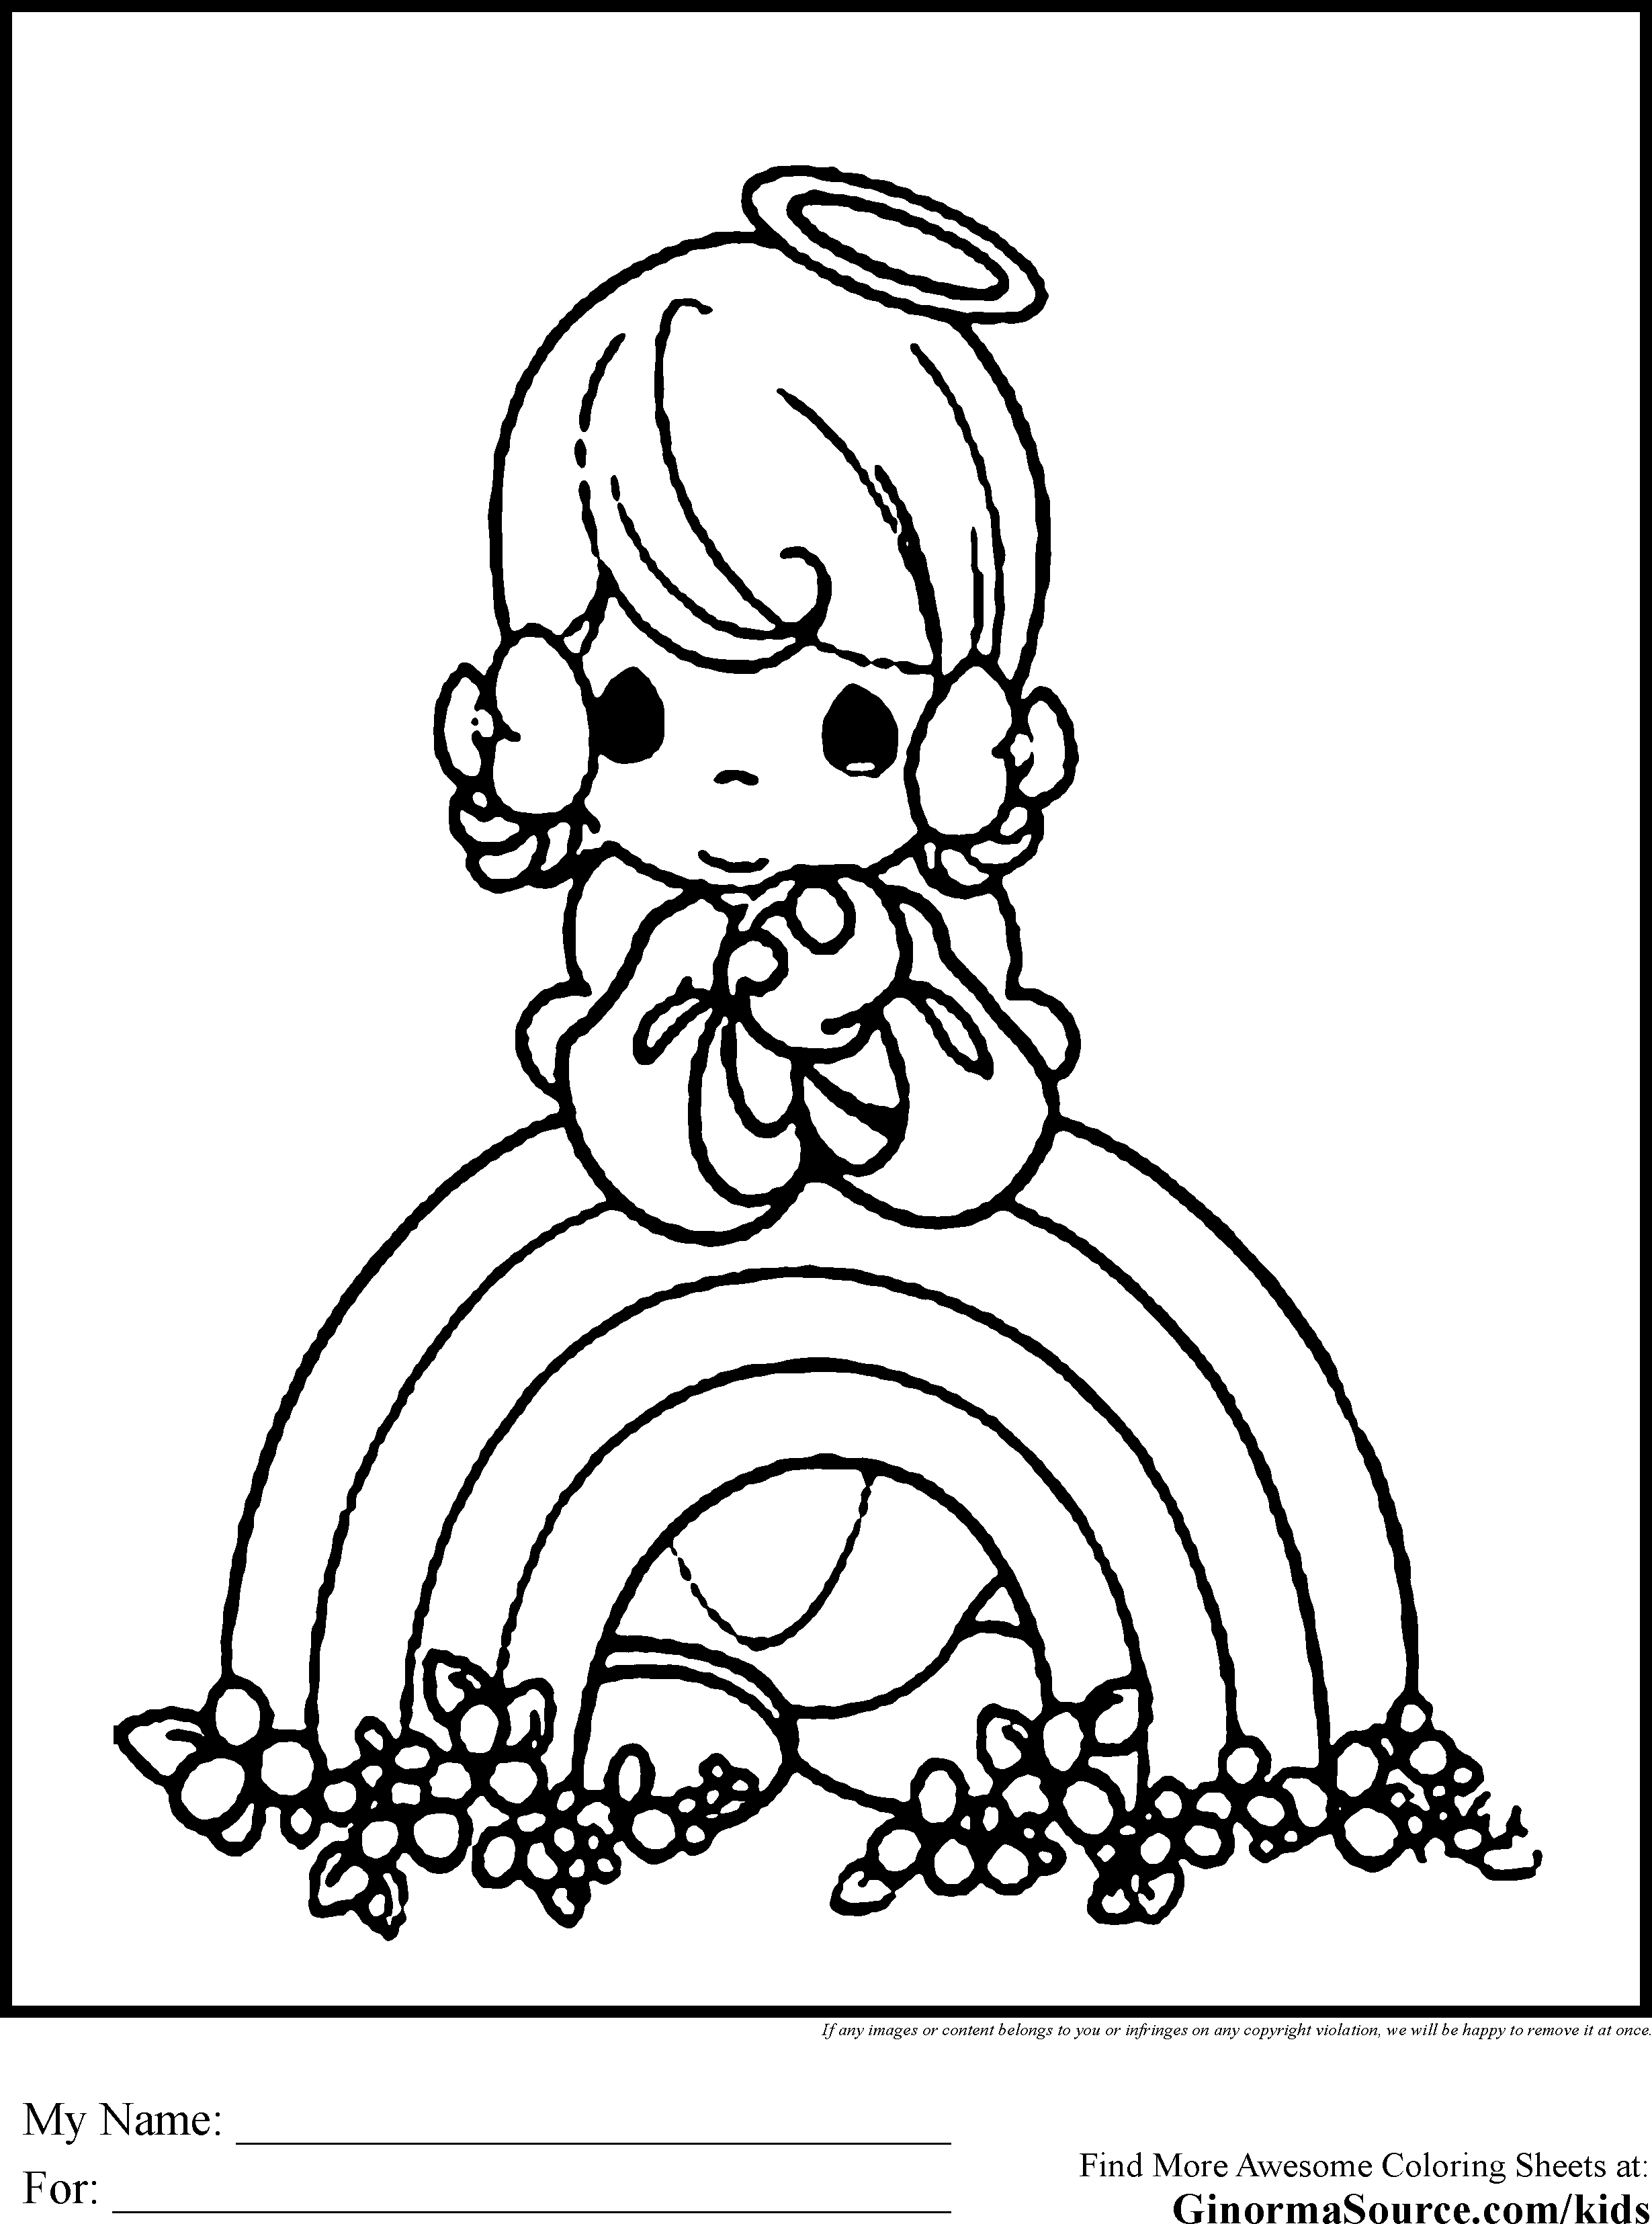 Coloring Sheets You Can Print Download – Free Coloring Sheets